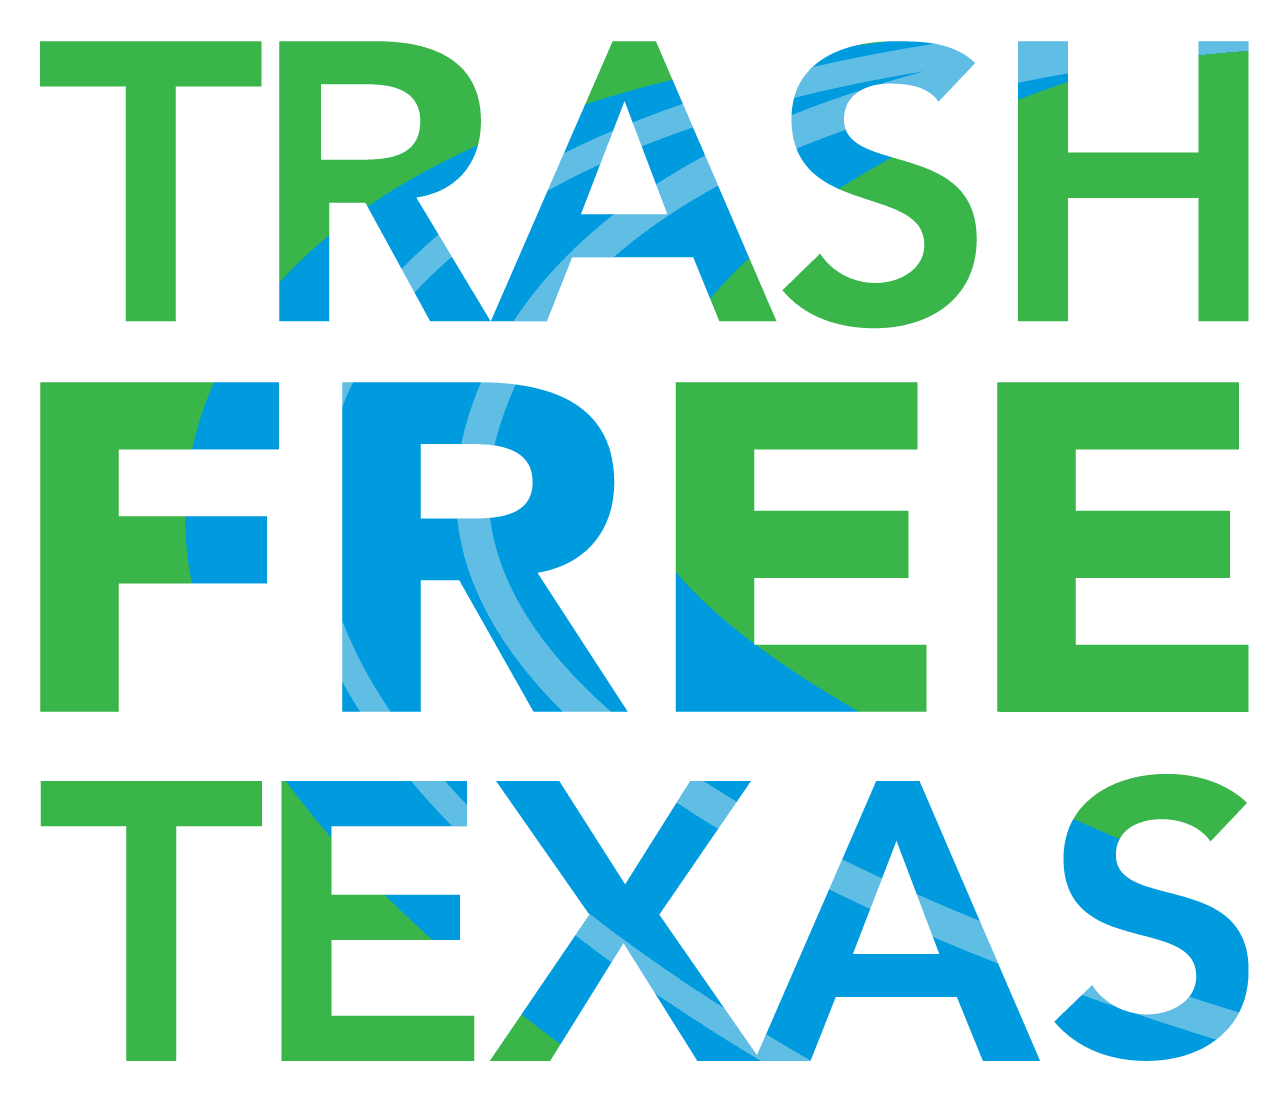 Visit Trash Free Texas